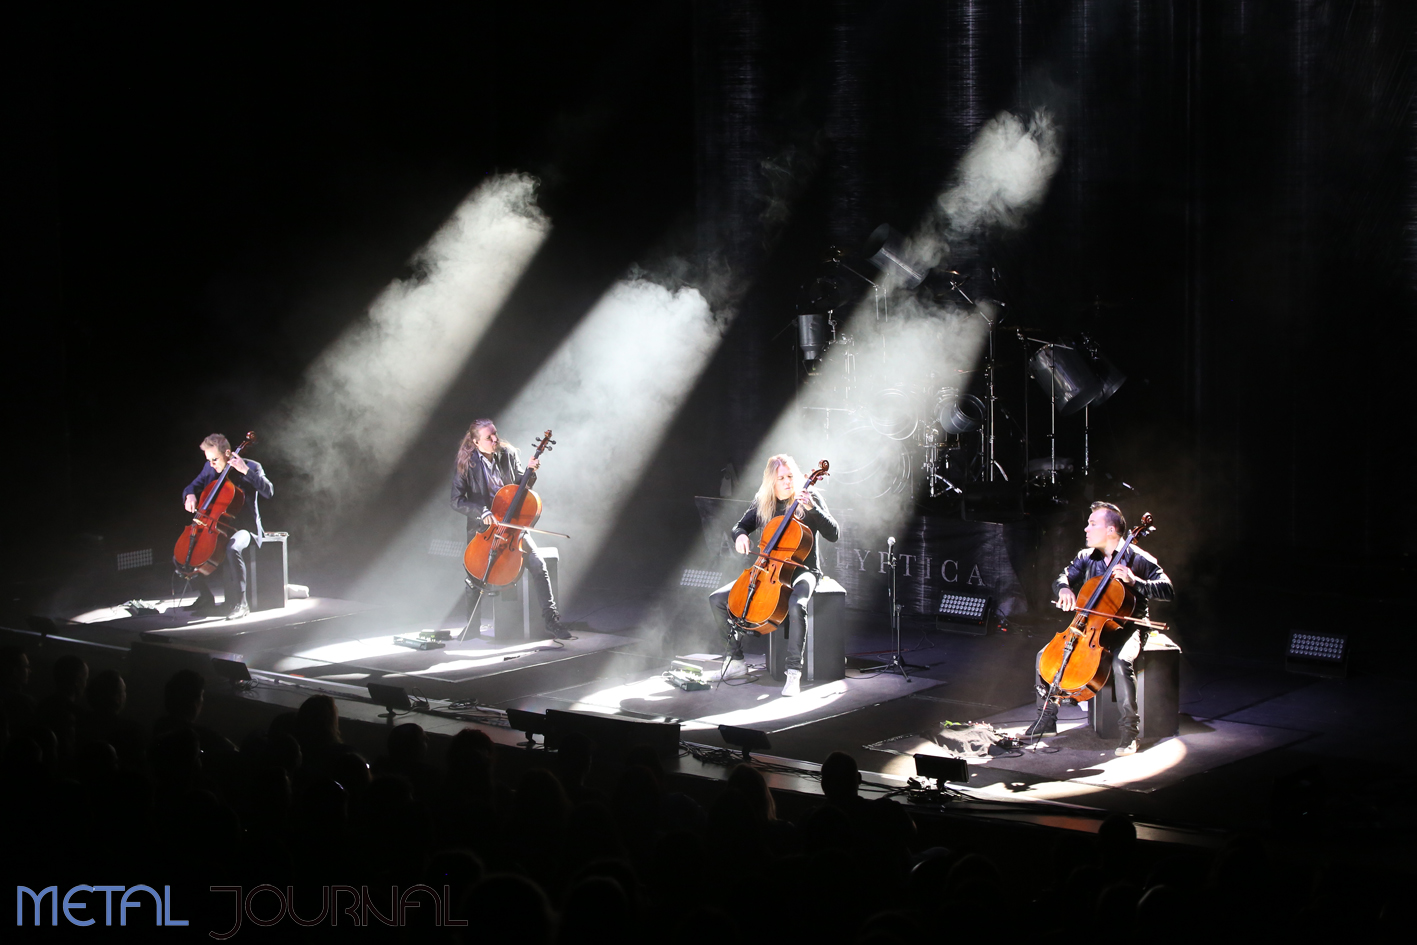 apocalyptica-metal journal pic 8